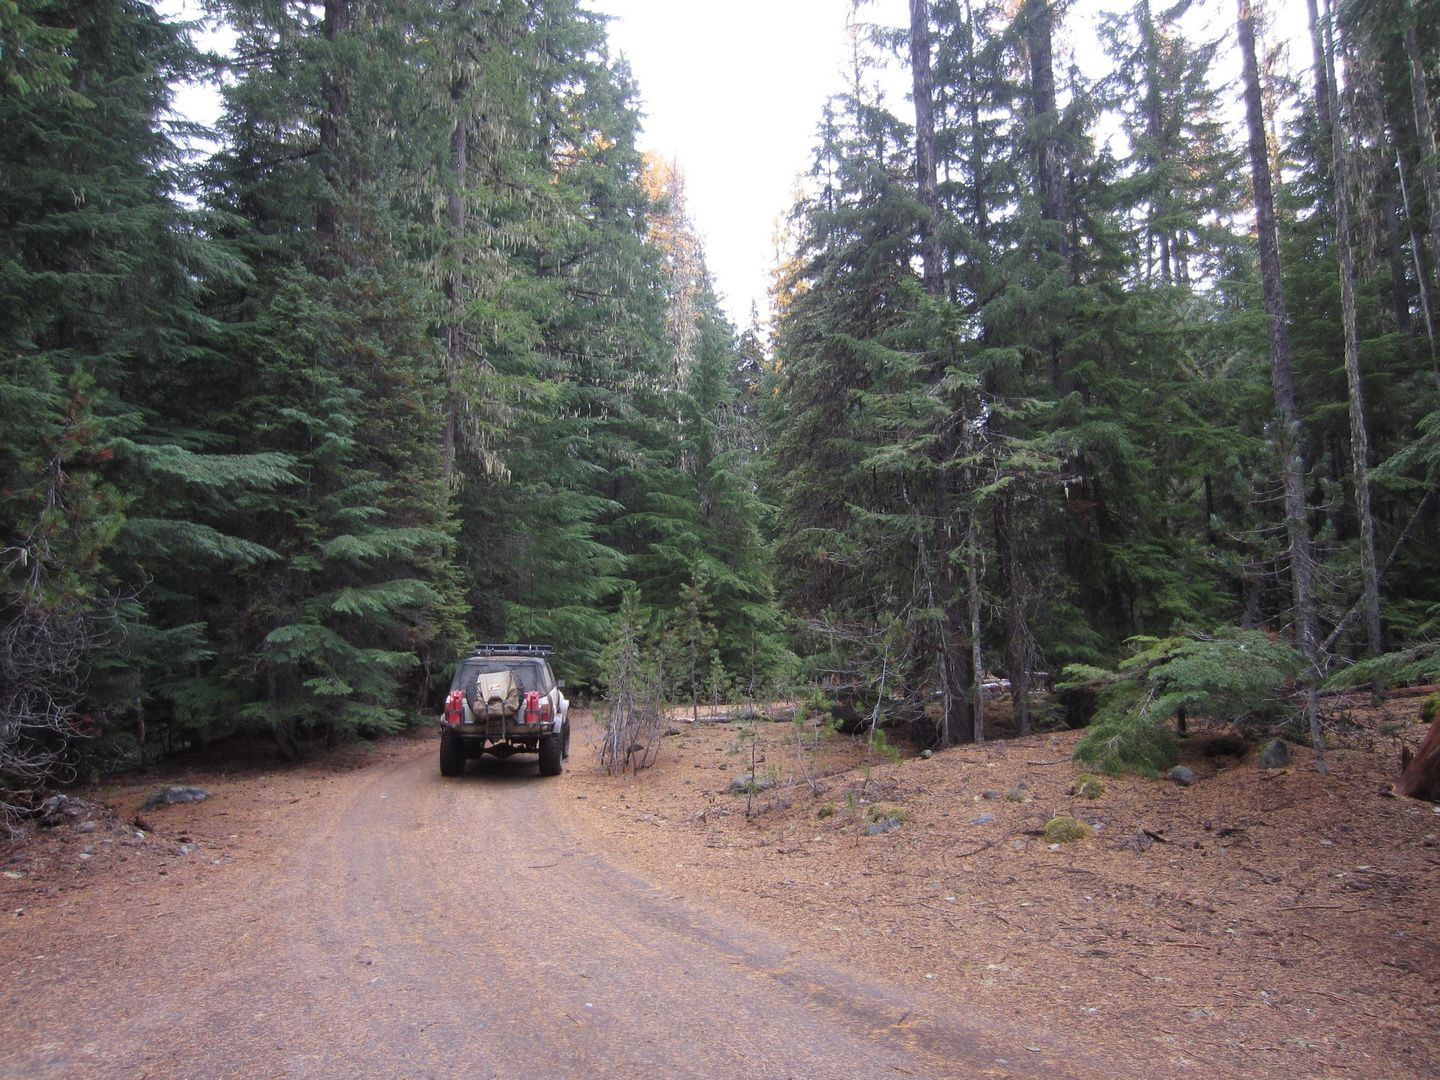 Barlow Trail - Waypoint 35: Continue Straight